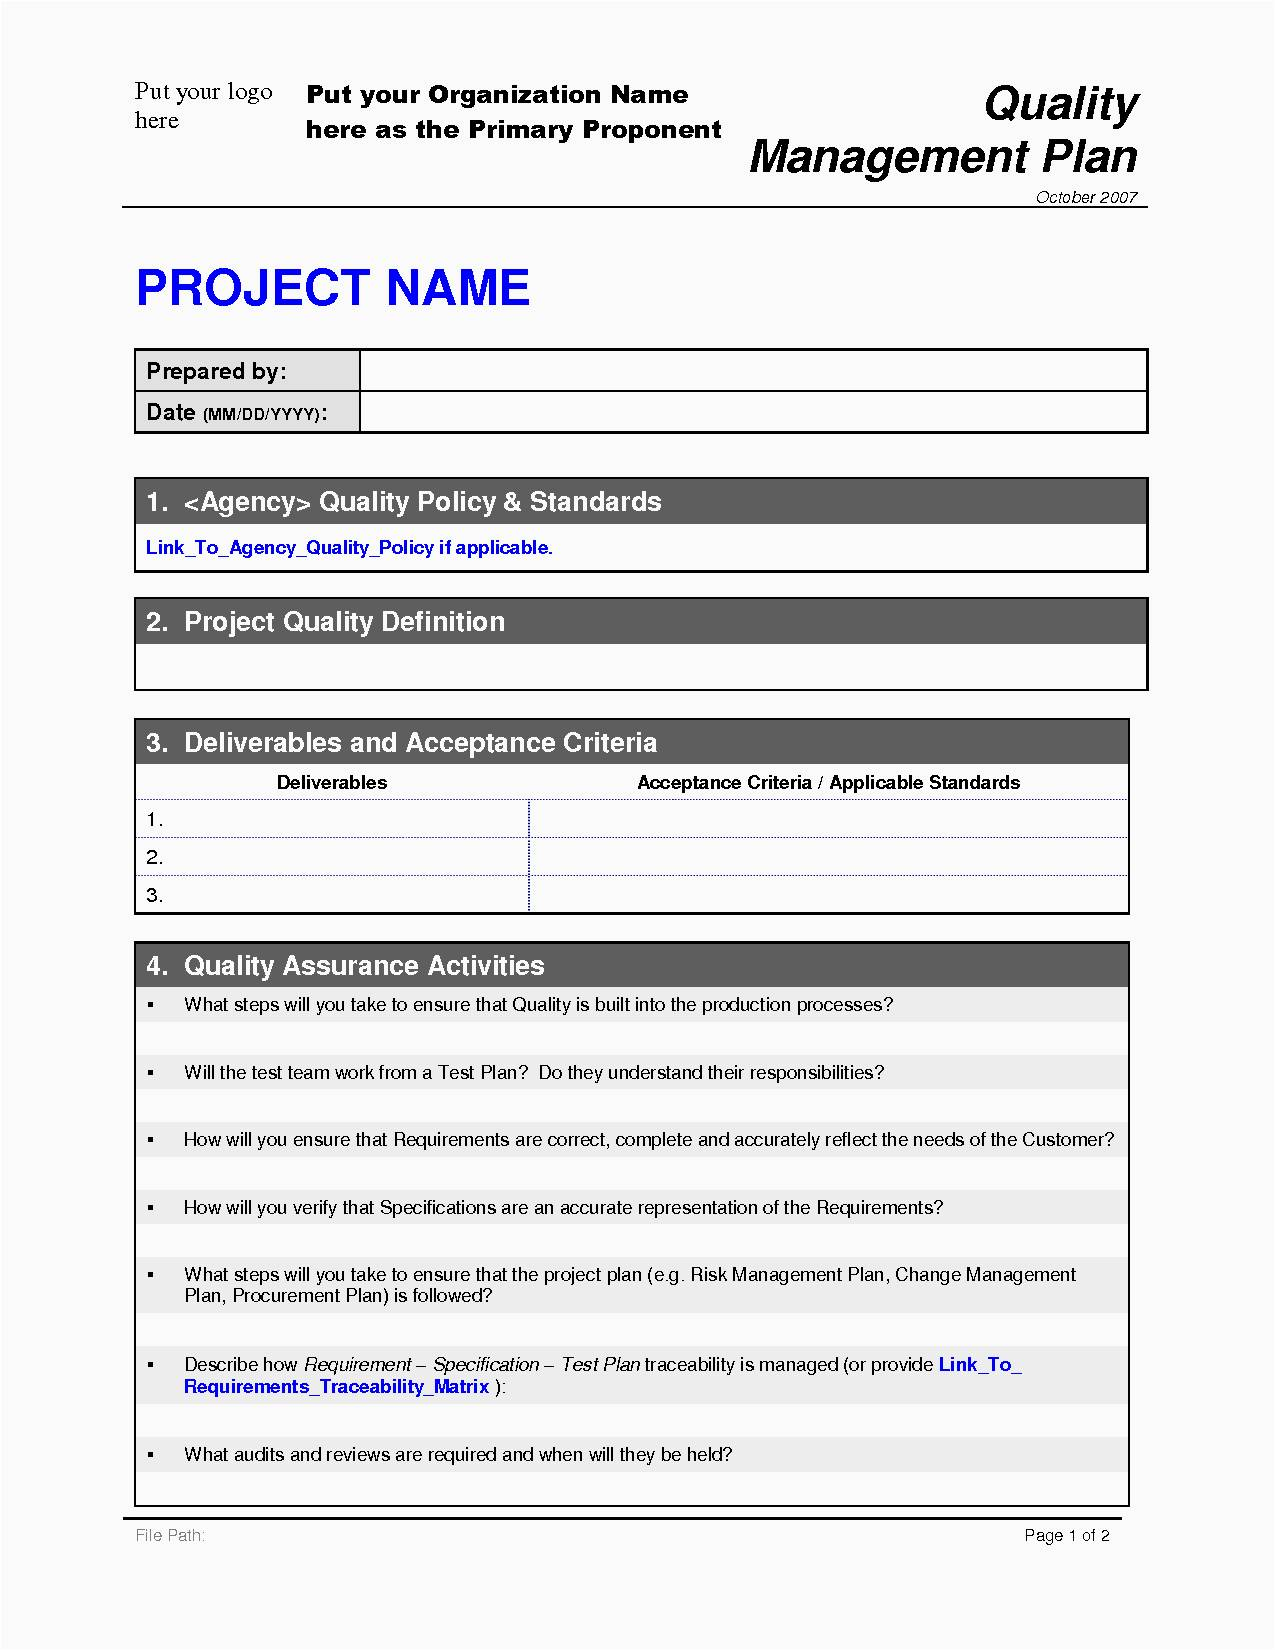 Quality Management Plan Template Project 32288 Bnxieo Portrait